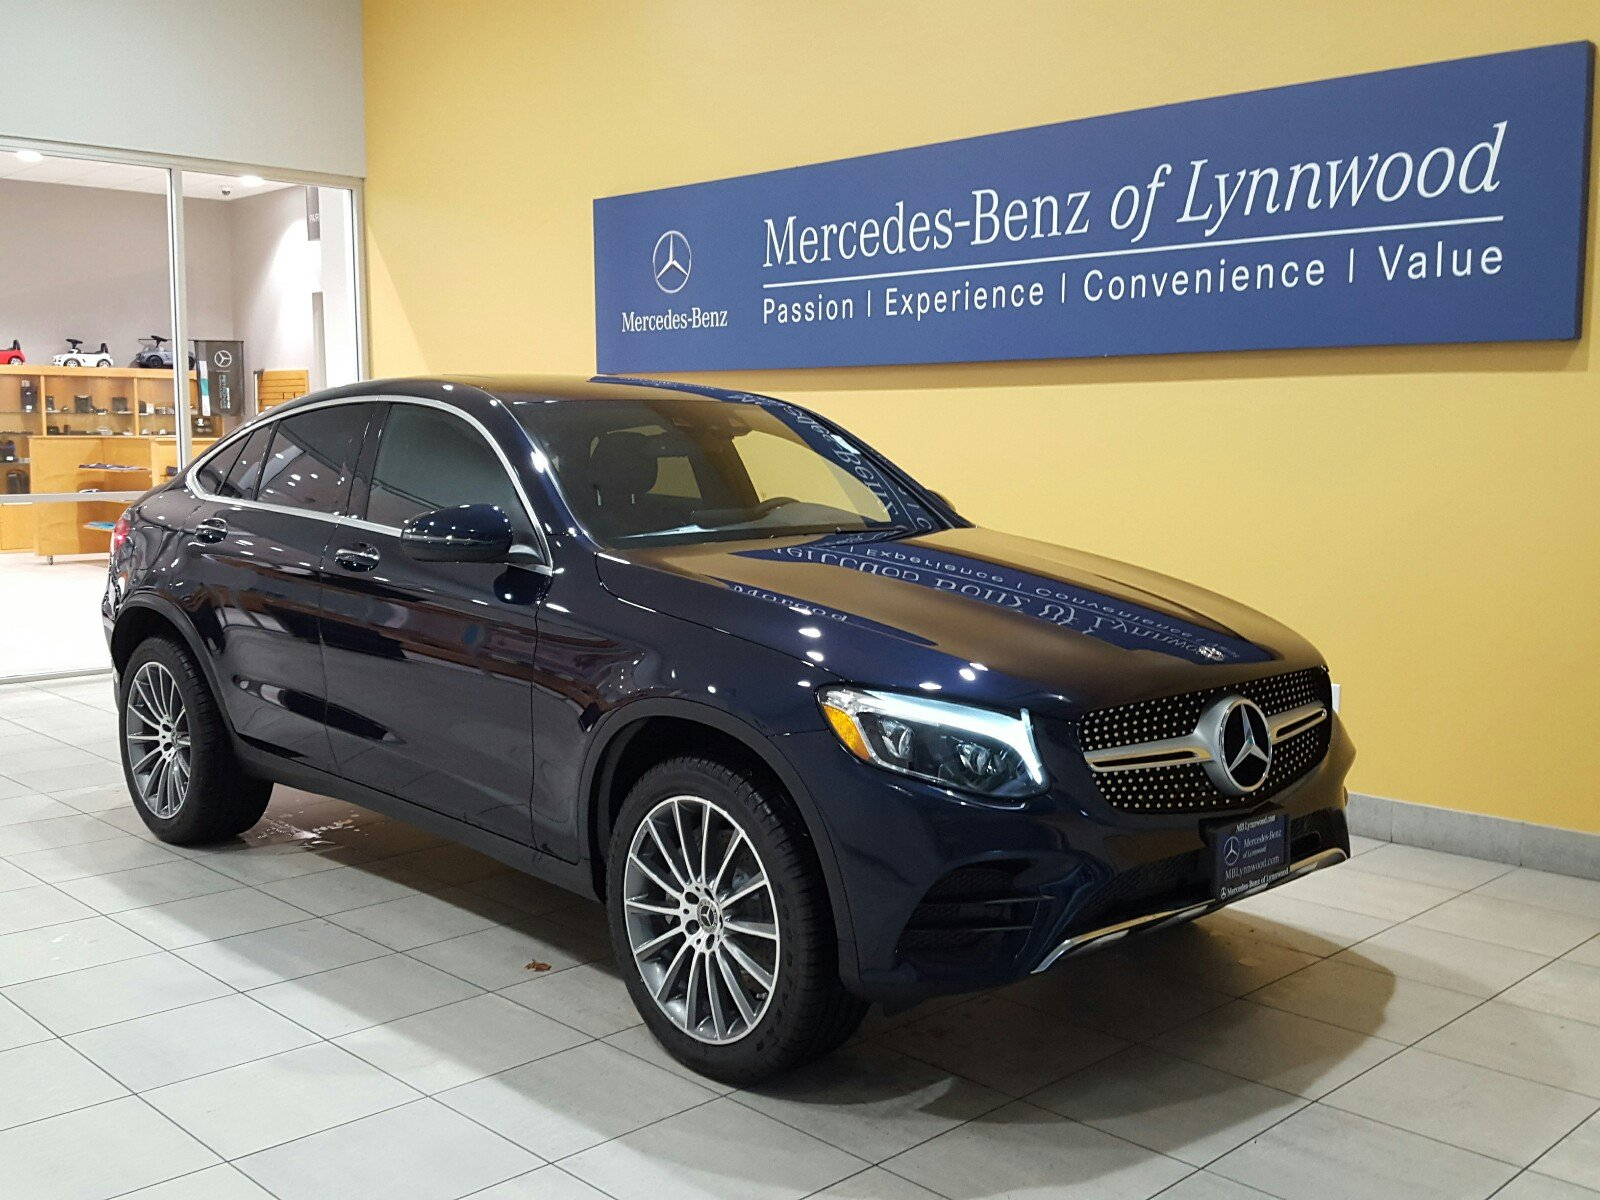 New 2018 mercedes benz glc glc 300 4matic coupe coupe in for Mercedes benz glc 300 coupe